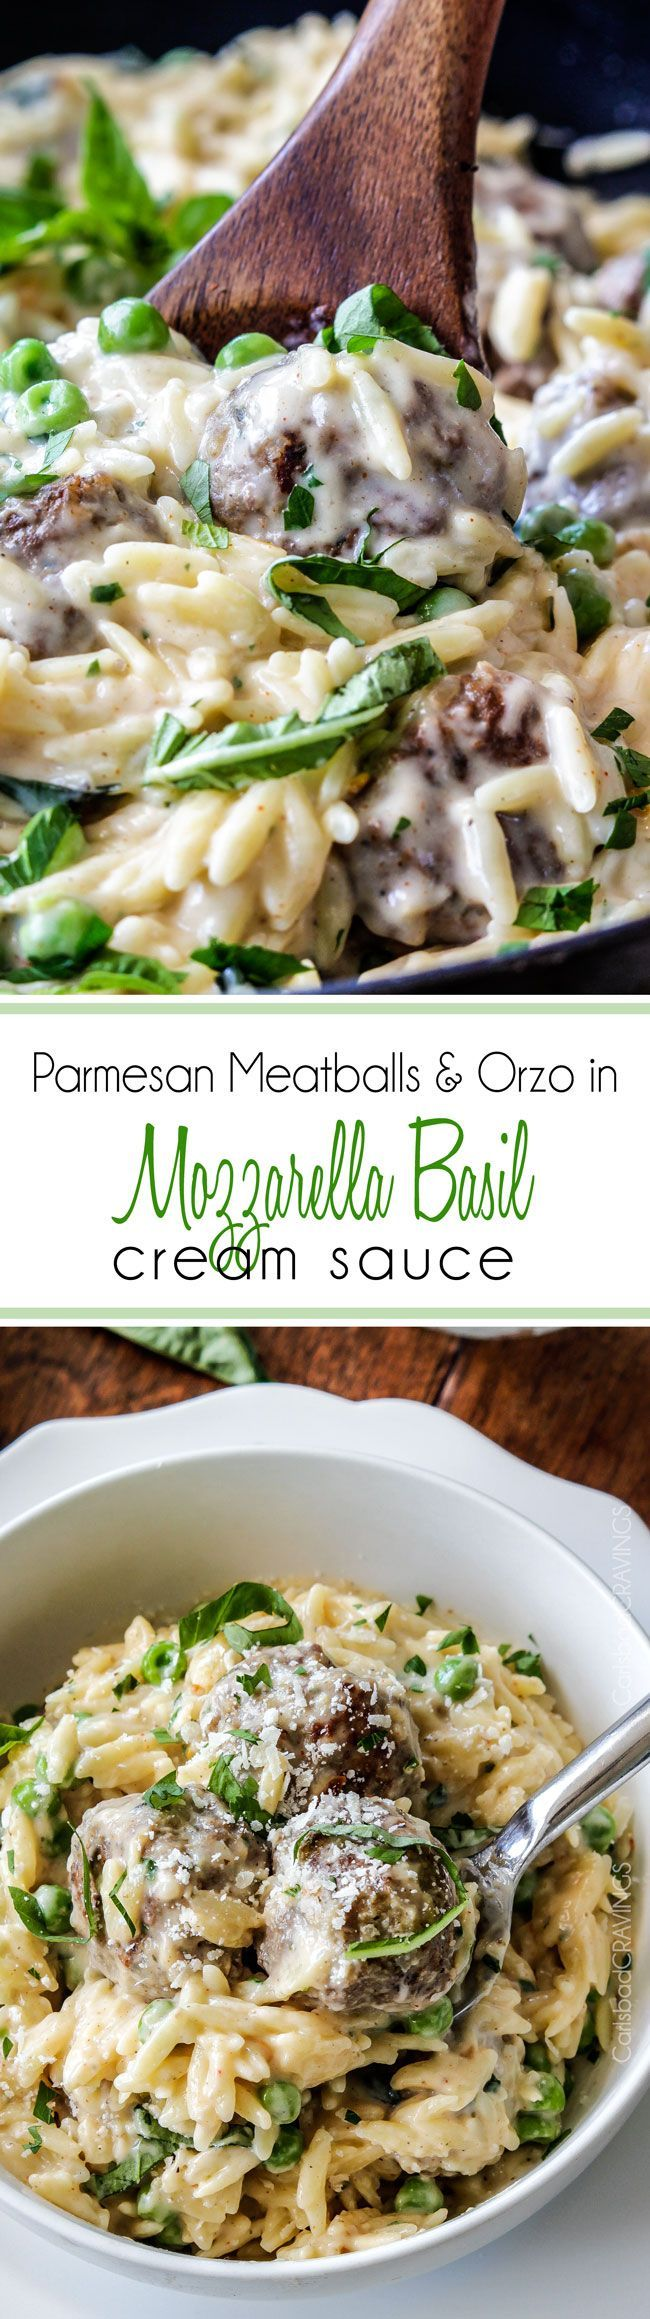 Parmesan Meatballs and Orzo in Mozzarella Basil Cream Sauce (lightened up) - crazy delicious creamy, cheesy sauce coating juicy meatballs and tender orzo.: